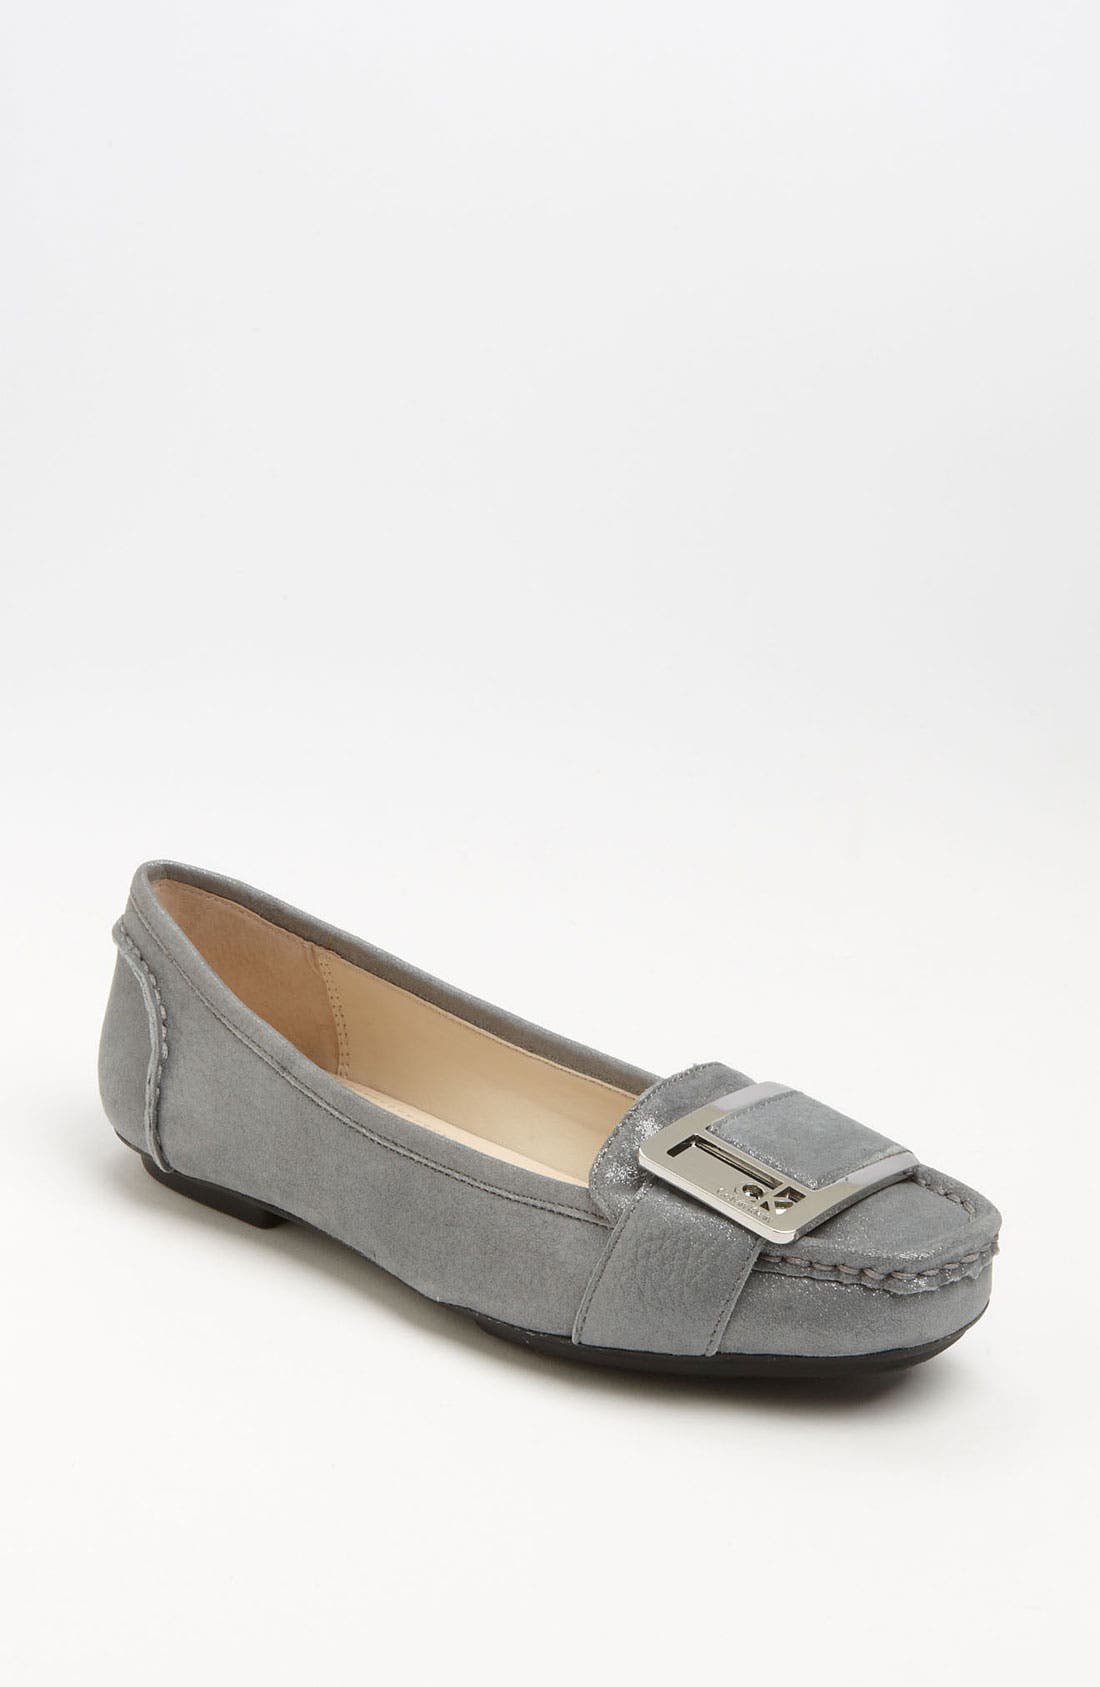 Alternate Image 1 Selected - Calvin Klein 'Meranda' Flat